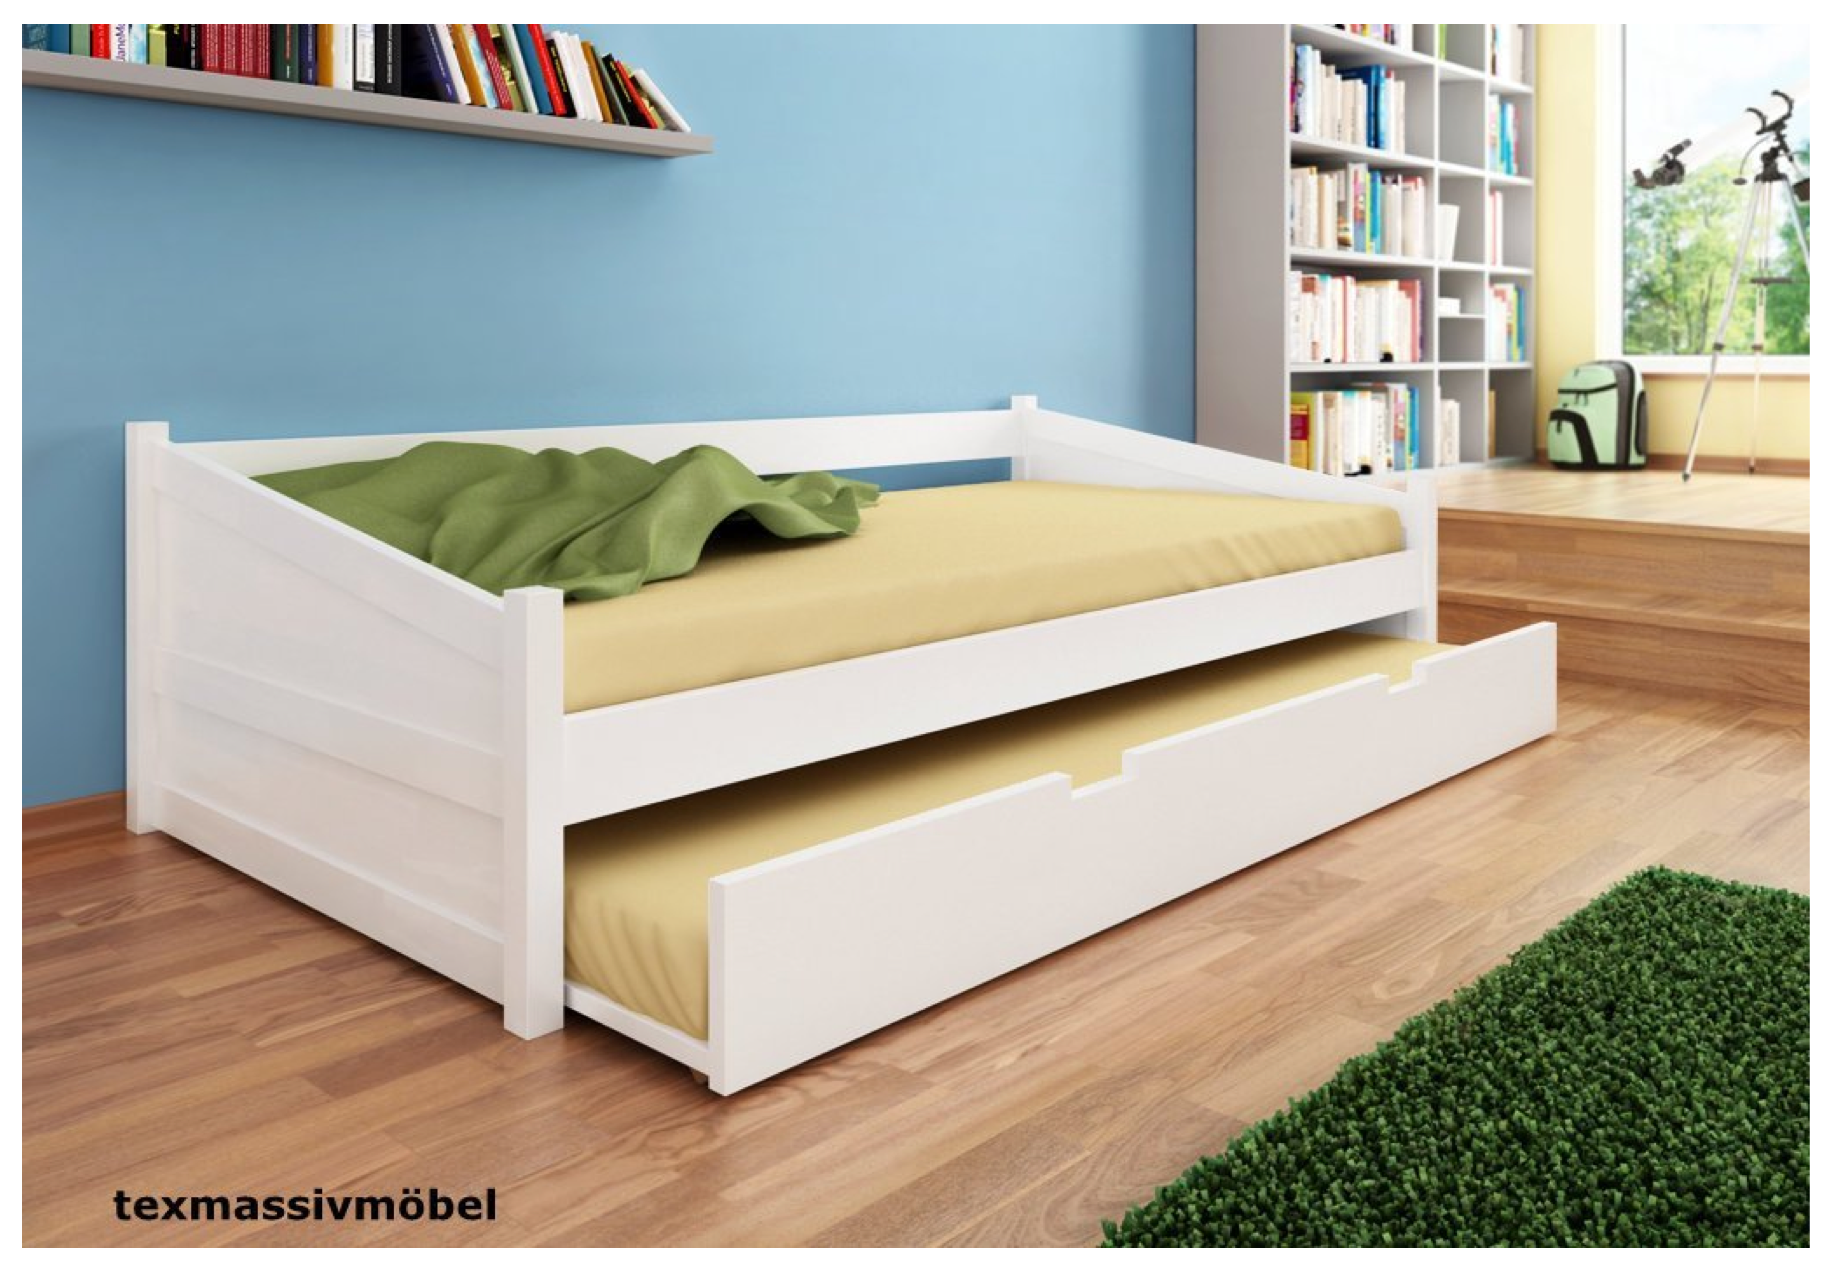 Lattenroste Amazon Lattenroste Bei Amazon Wandregal Schlafzimmer Ikea Wand